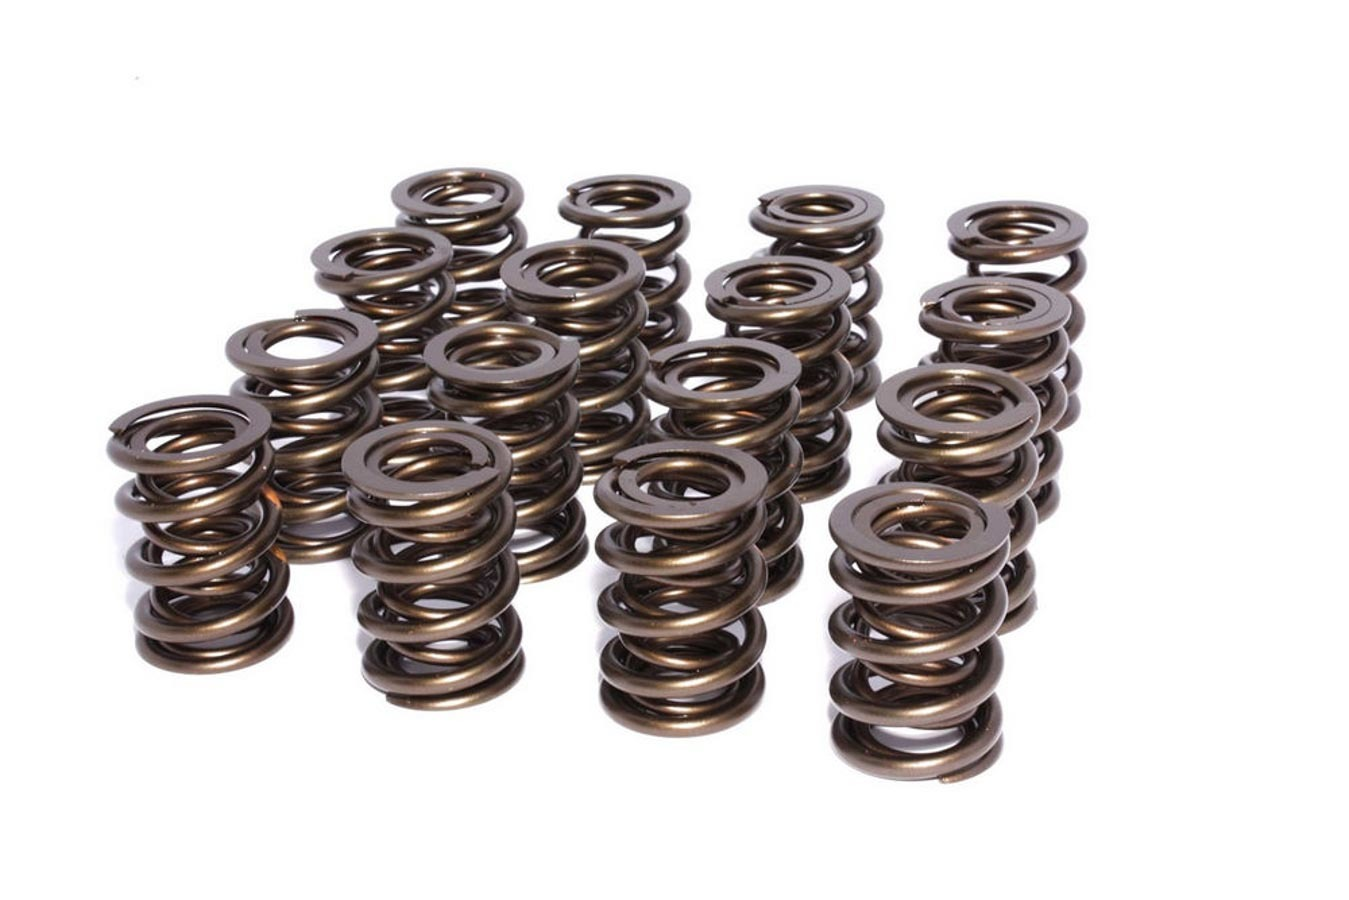 Comp Cams 26089-16 Valve Spring, Race Endurance, Dual Spring, 500 lb/in Spring Rate, 1.230 in Coil Bind, 1.550 in OD, Set of 16